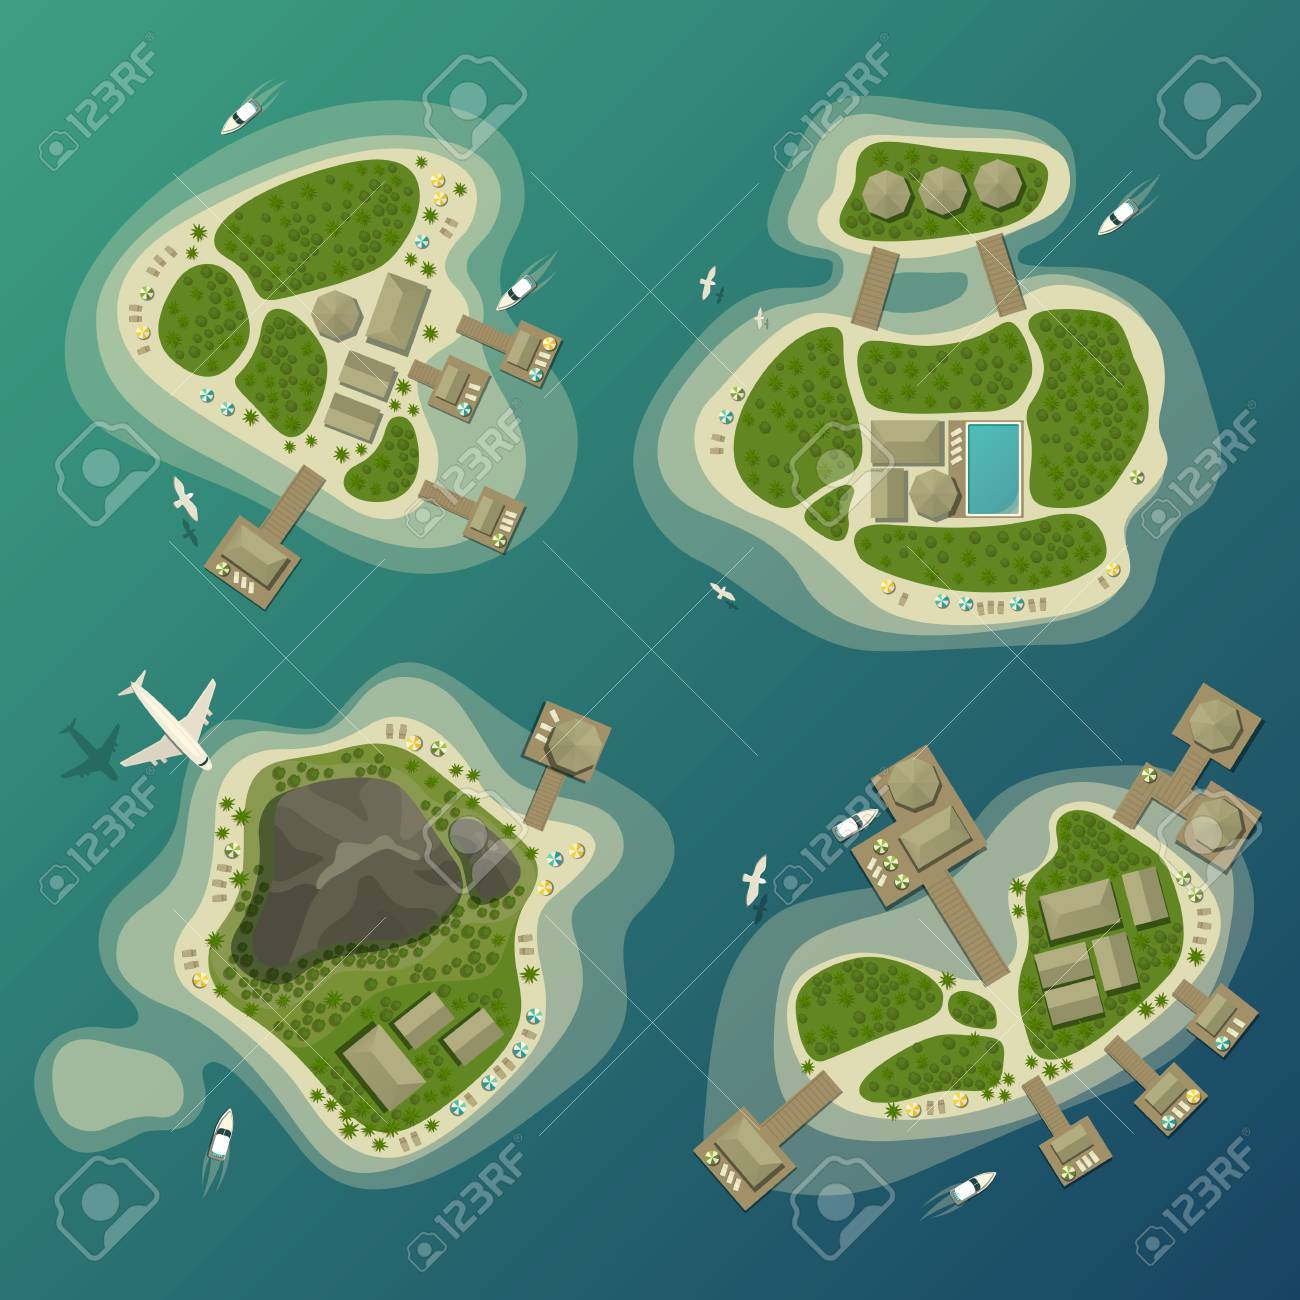 Tropical islands top view, travel and tourism sign - 73891575